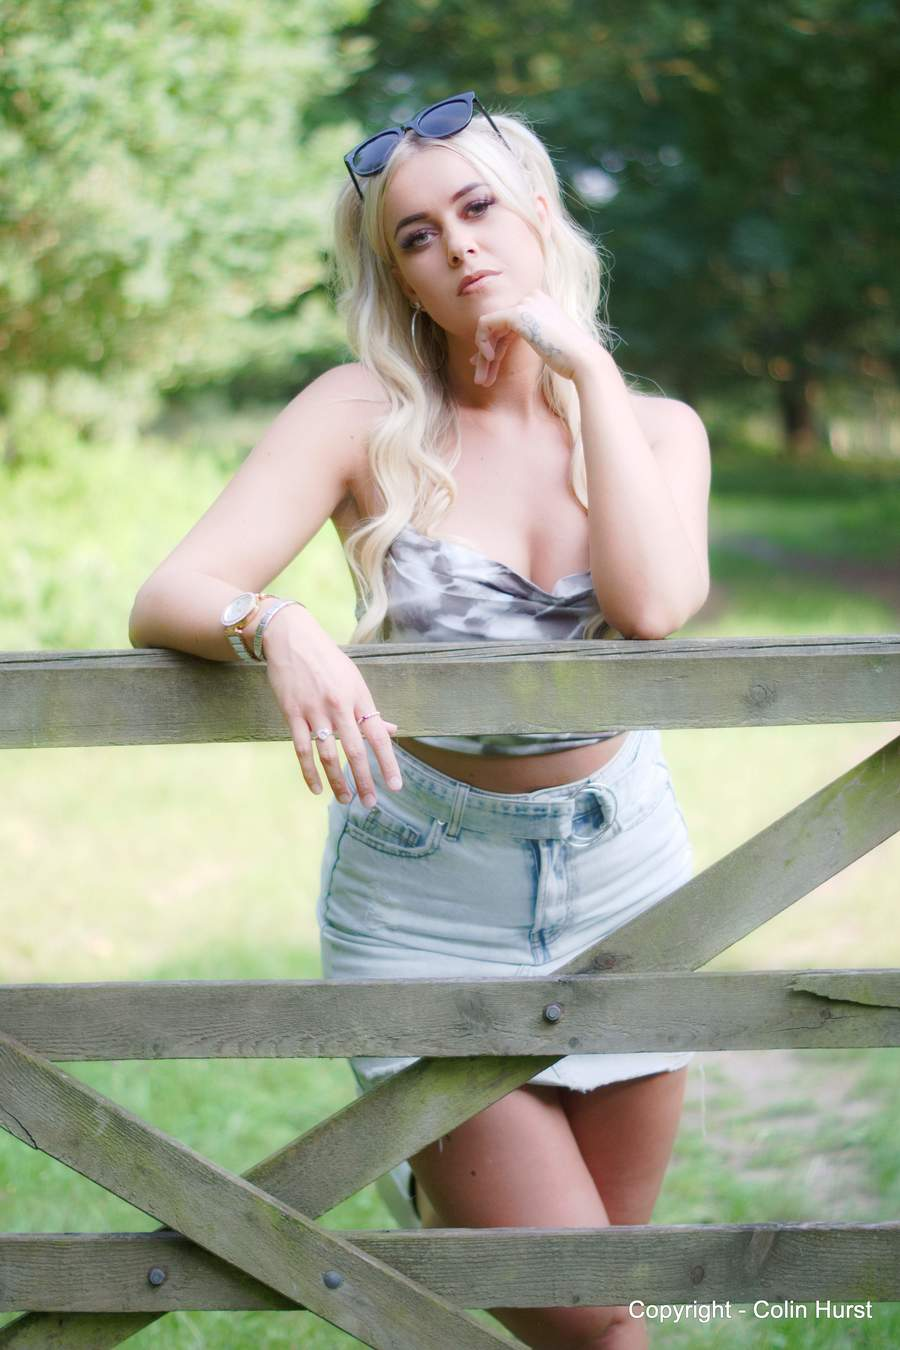 Nicola Booth - Clumber Park shoot #37 of 134 / Photography by Colin Hurst, Model Nicola Booth / Uploaded 29th August 2021 @ 08:49 AM